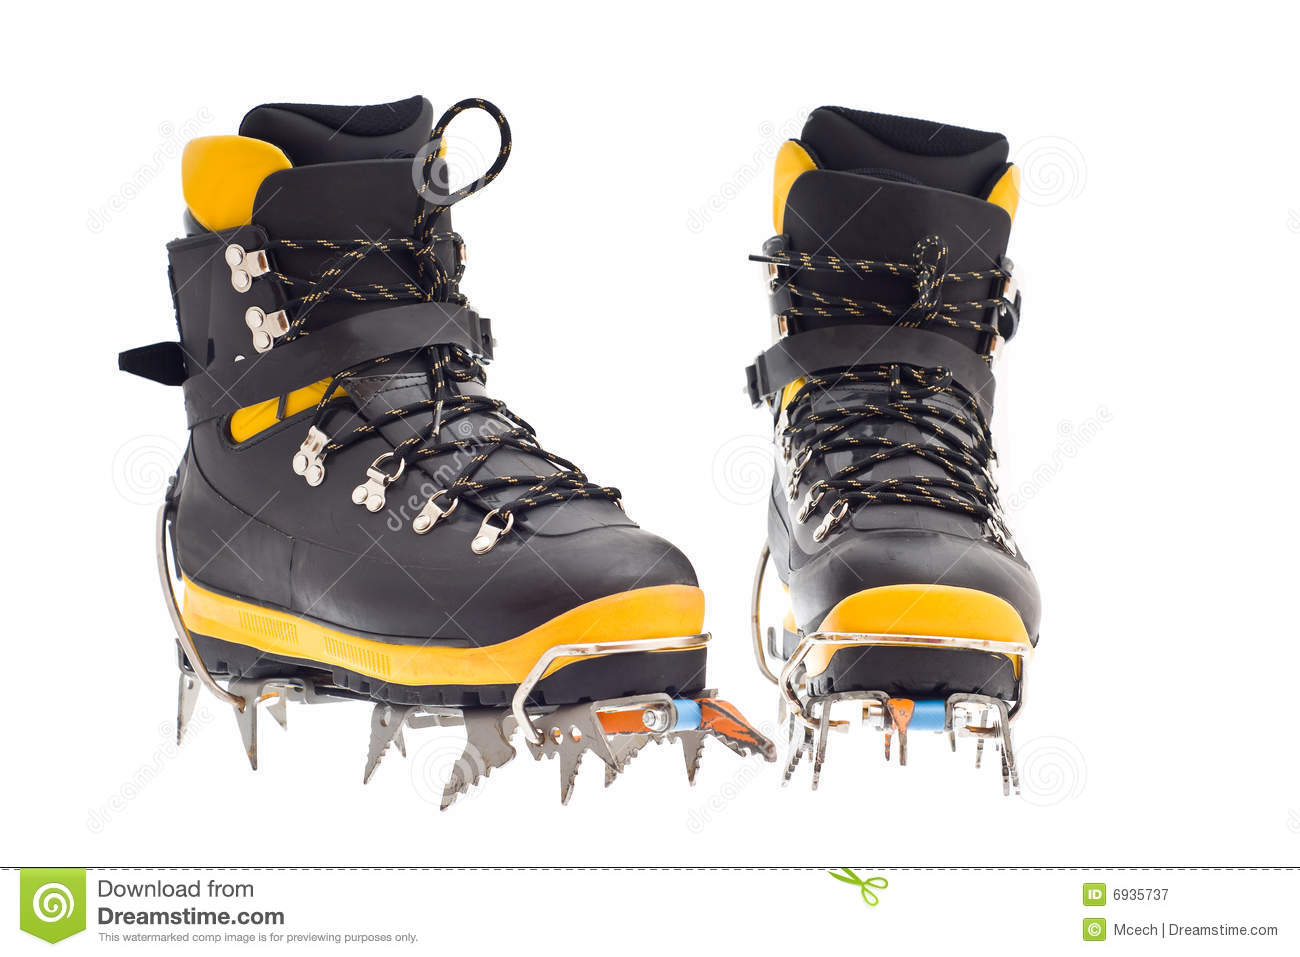 632cbd65f45 High Mountain Boots With Crampons Stock Image - Image of hiking ...